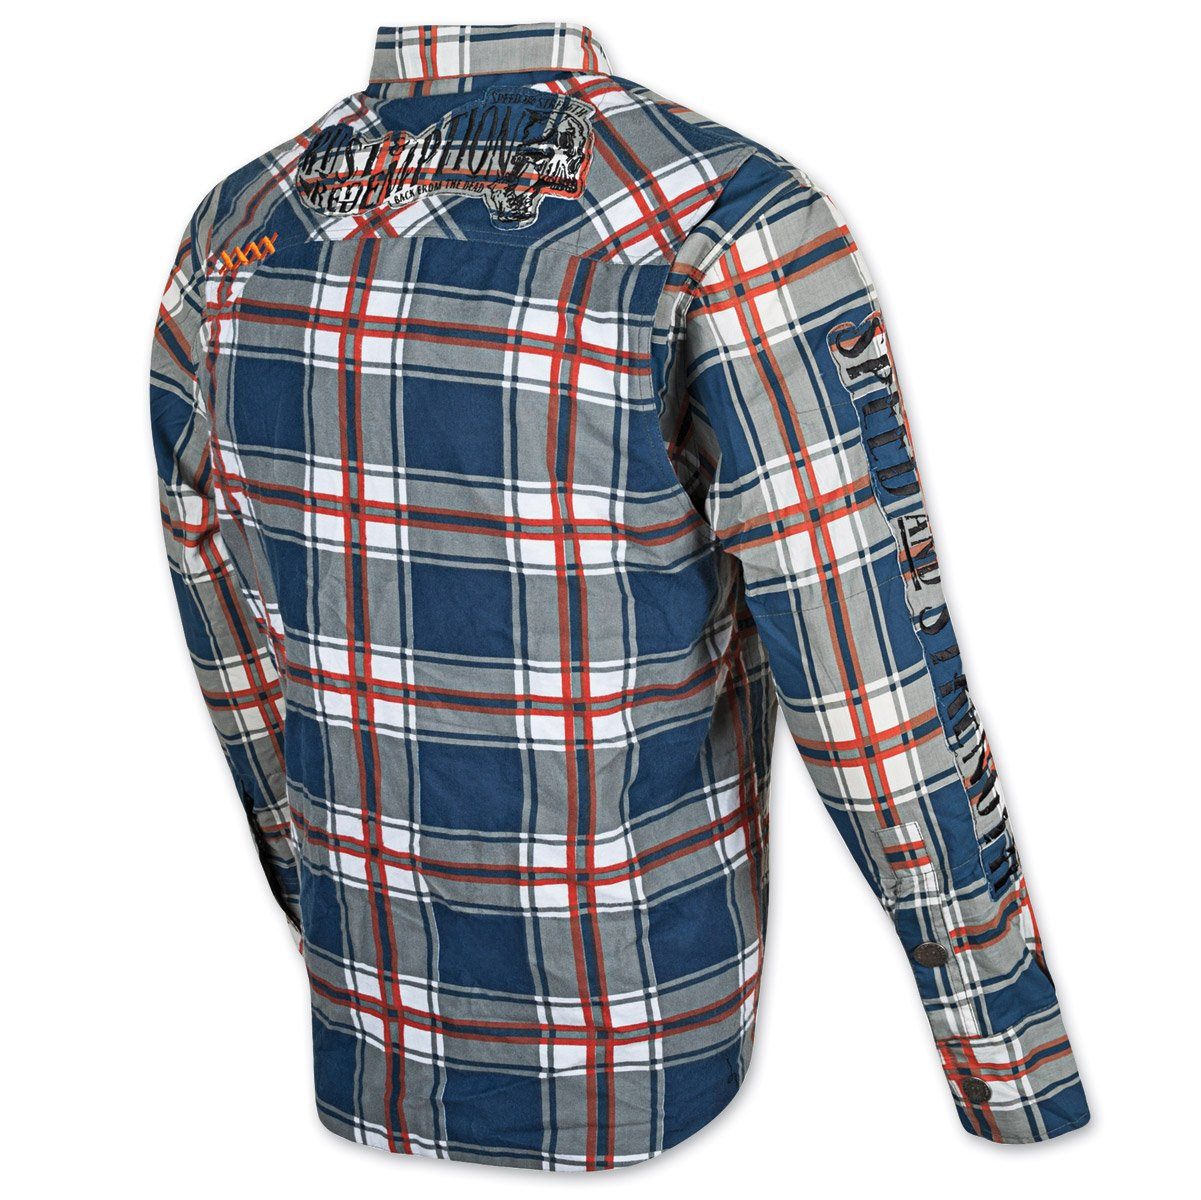 8523856608 XX-LARGE Speed /& Strength Rust And Redemption Armored Shirt BLUE//ORANGE